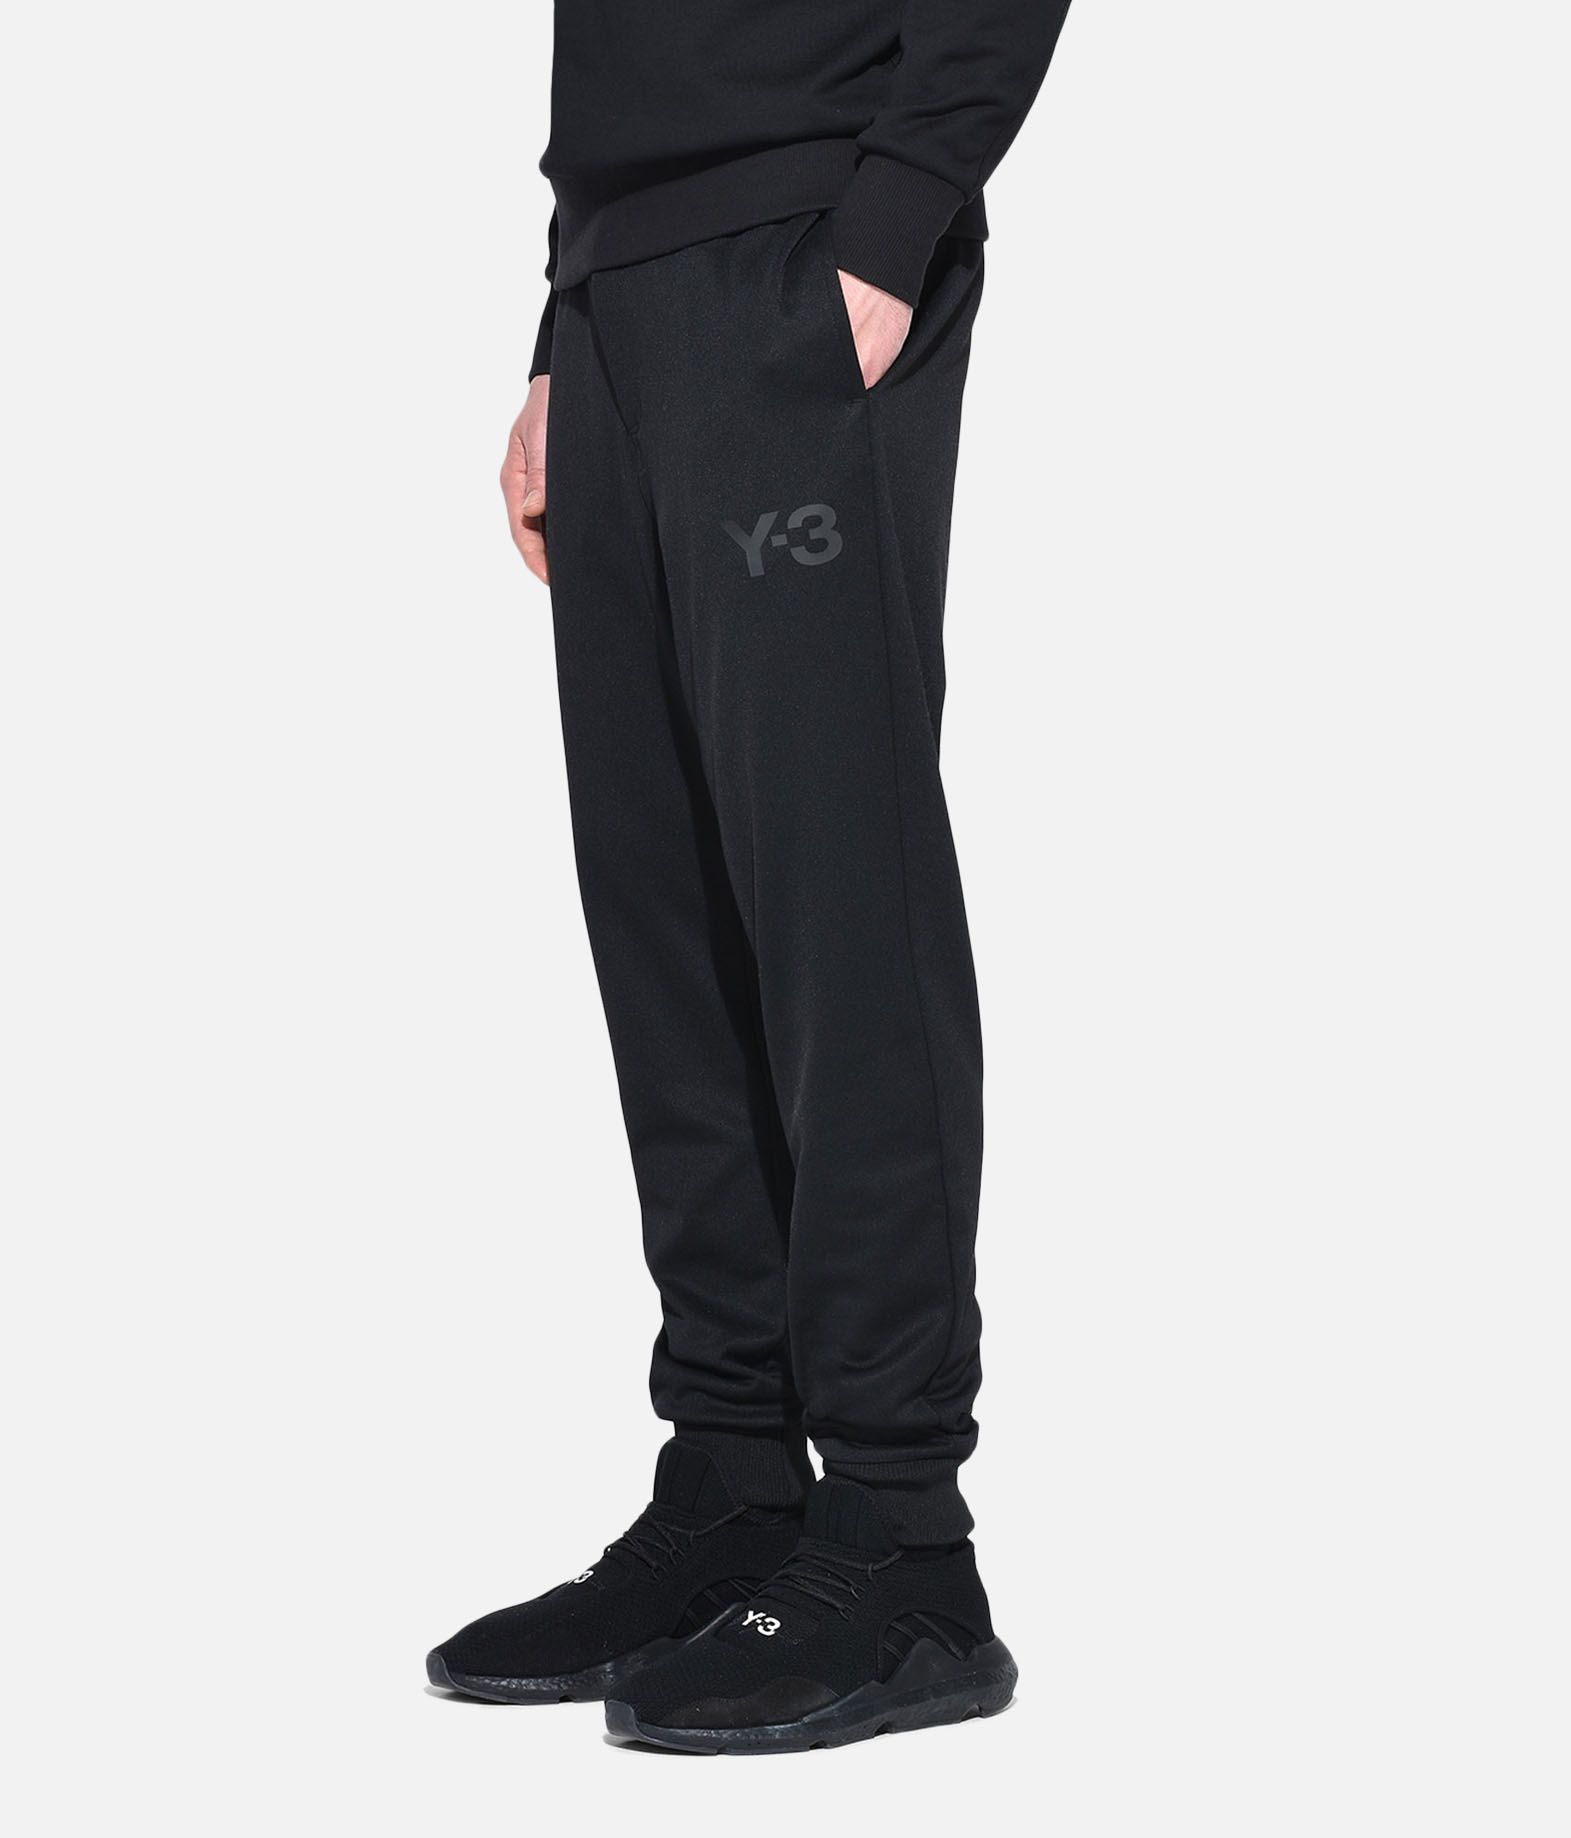 Y-3 Y-3 CLASSIC TRACK PANTS Track pant Homme e